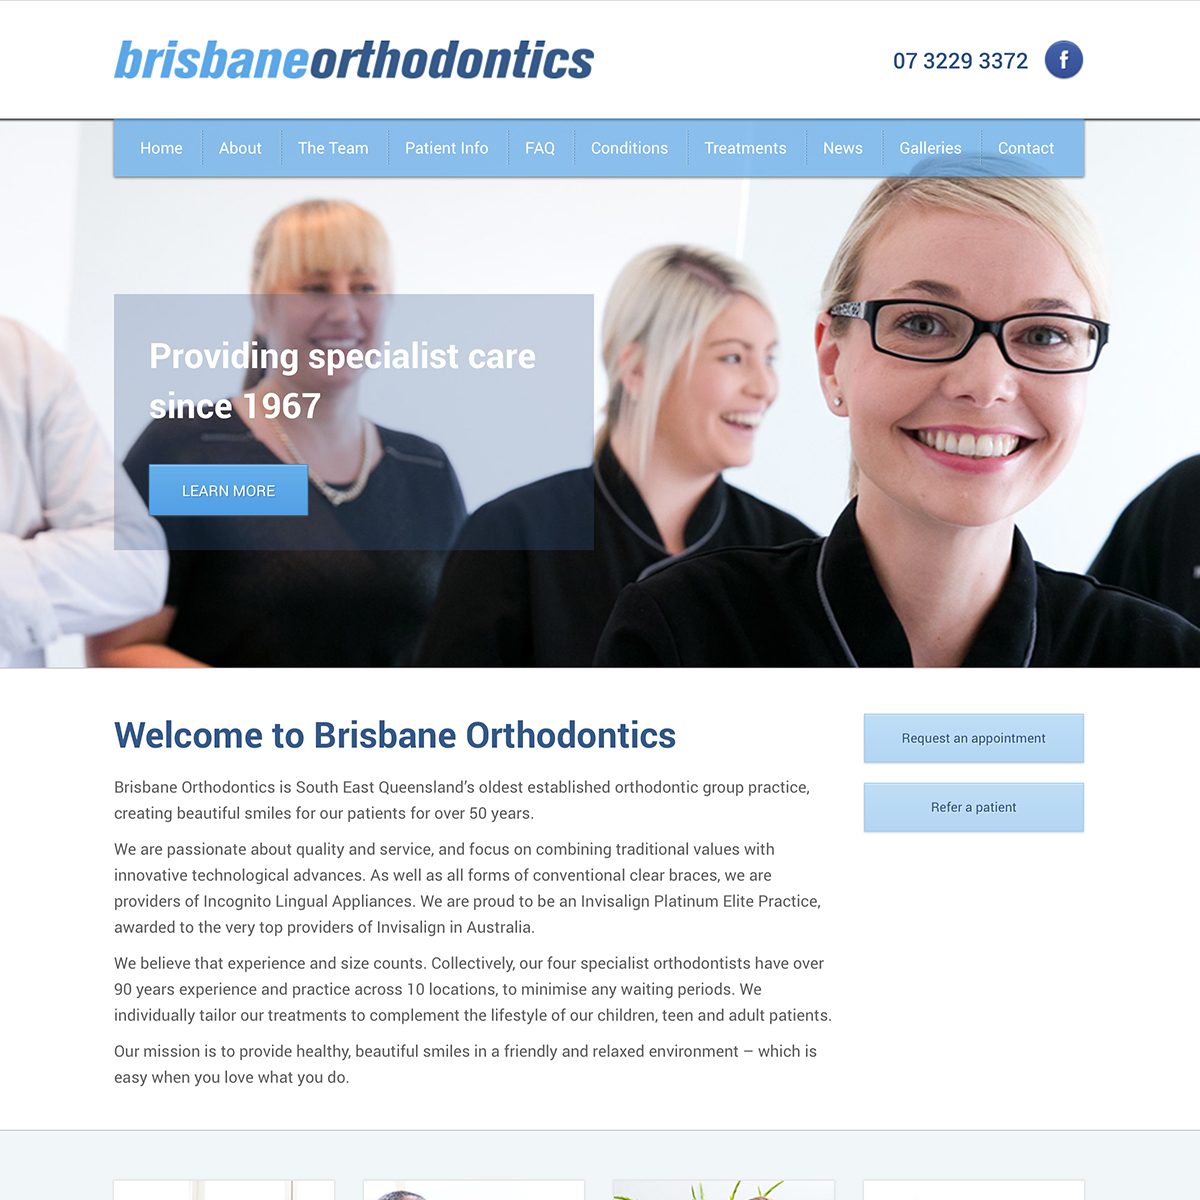 Image of home page of Brisbane Orthodontics